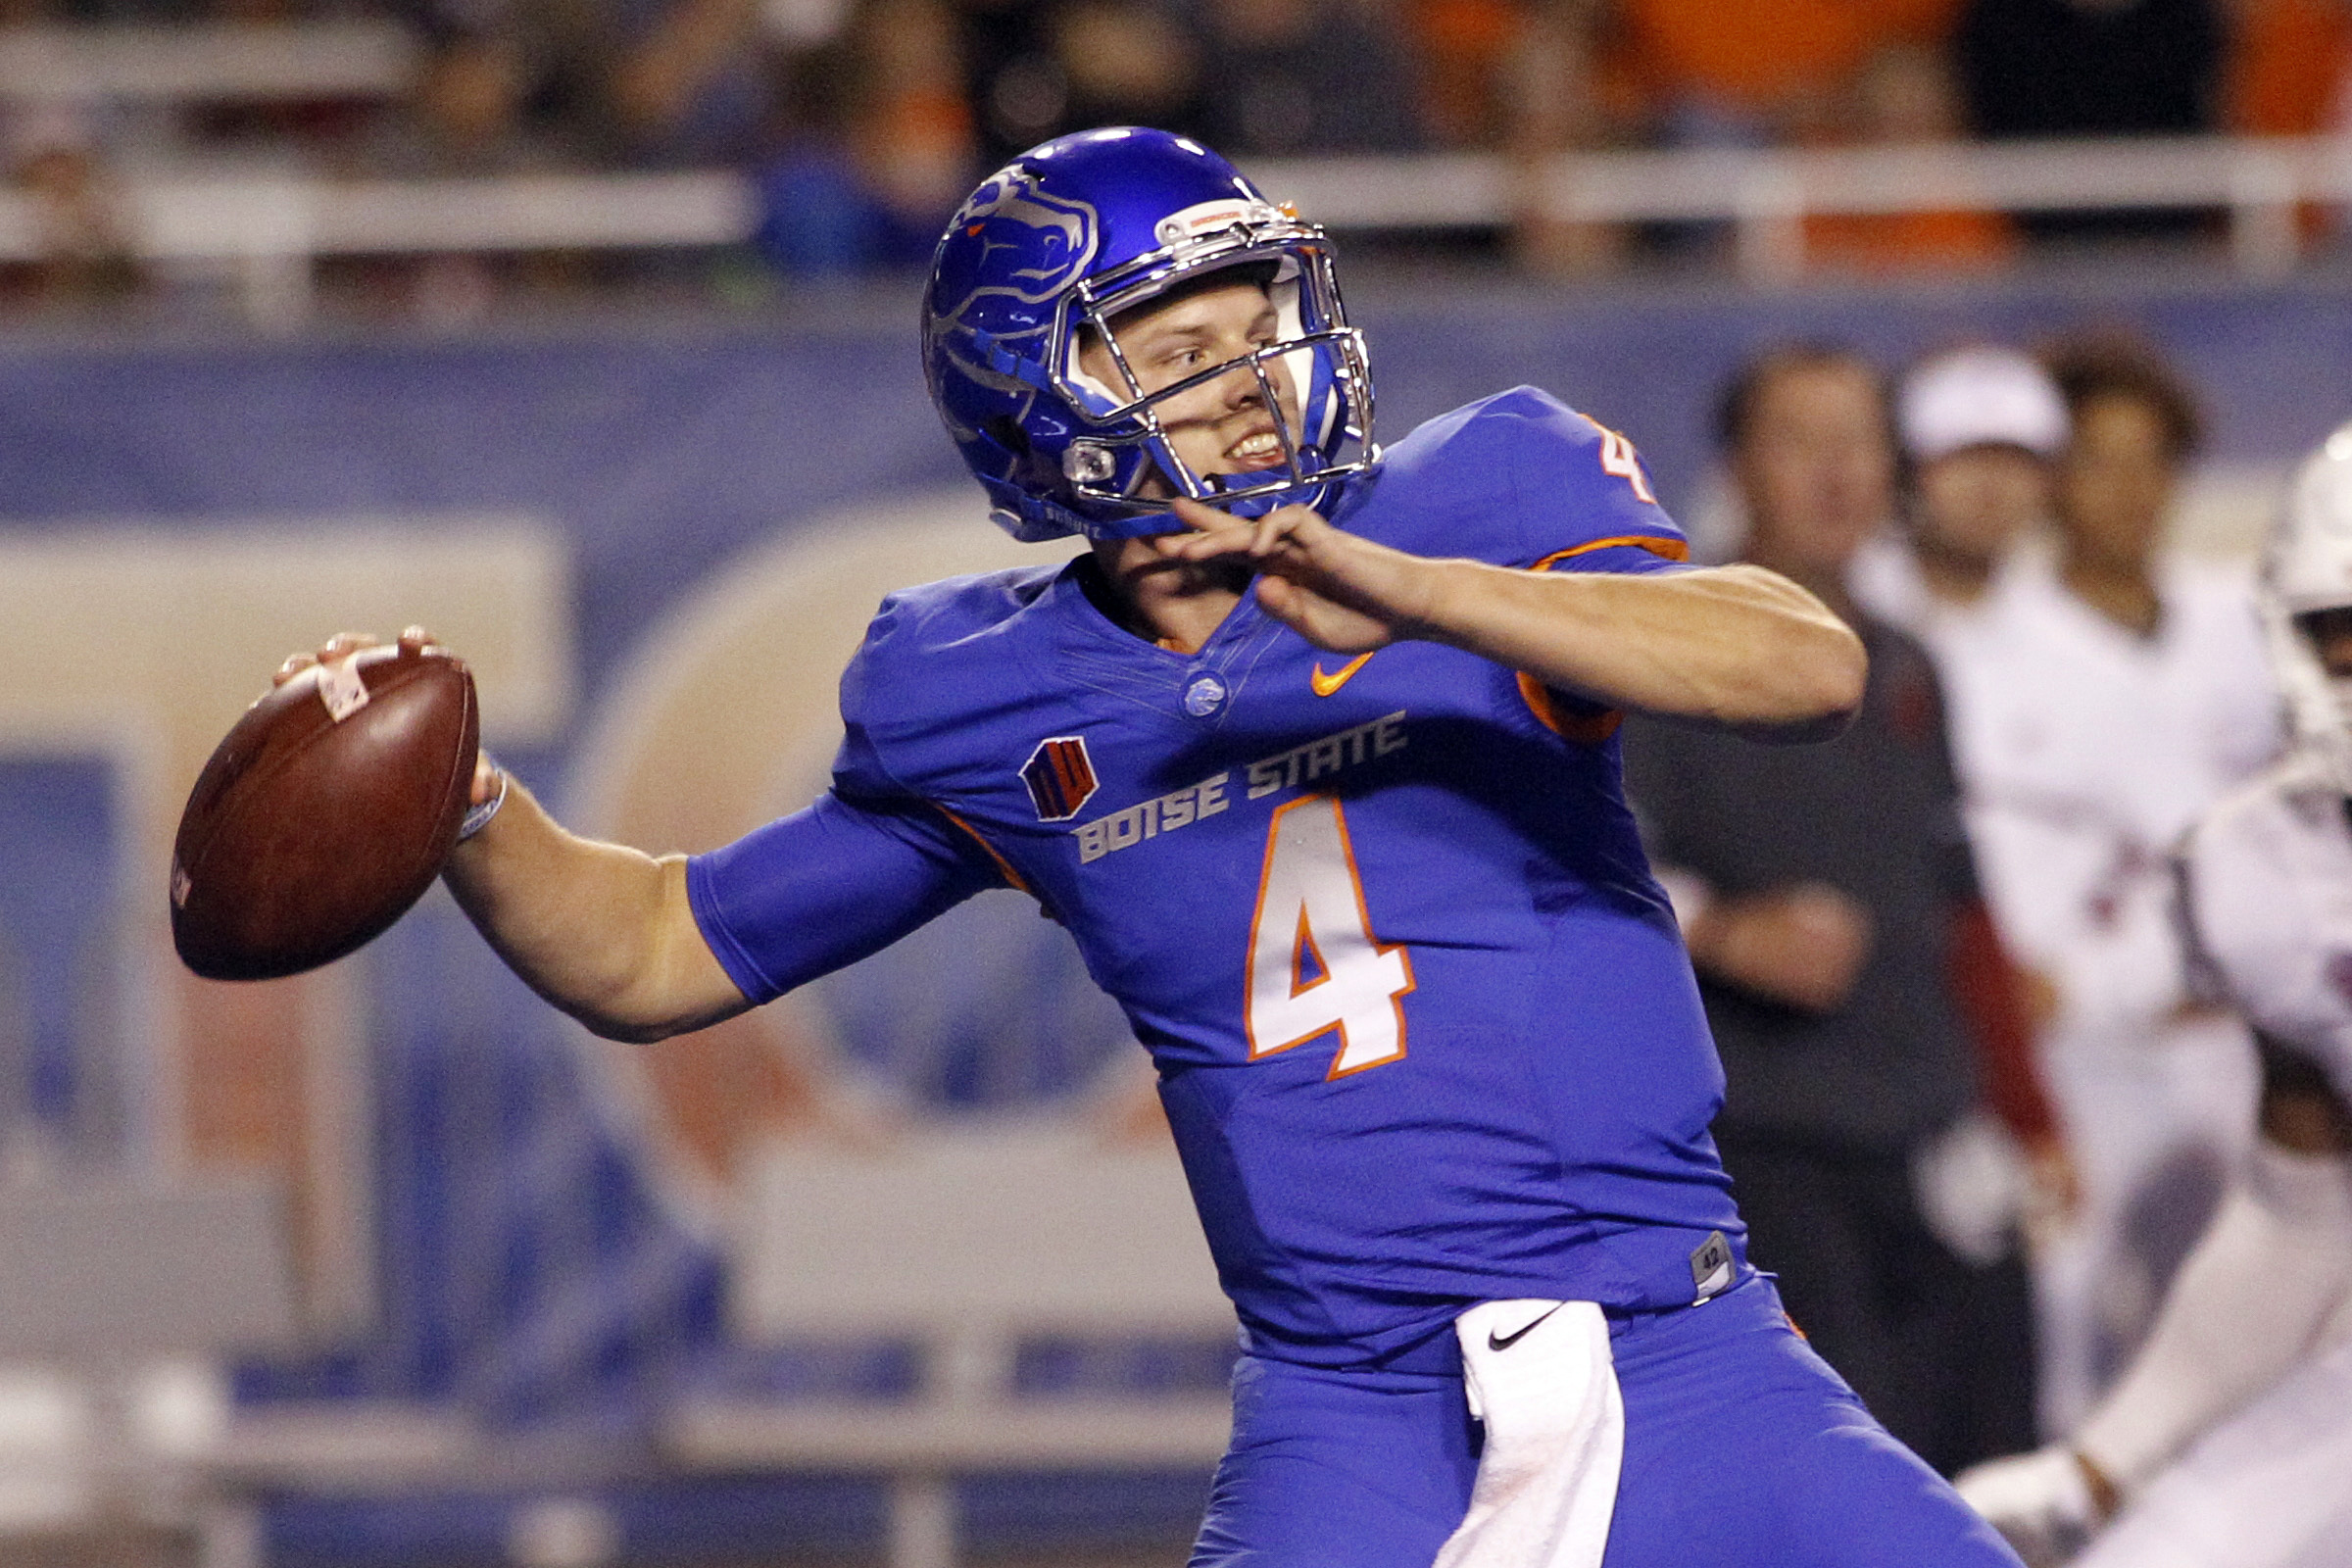 FILE - In this Sept. 10, 2016, file photo, Boise State quarterback Brett Rypien (4) passes during the first half of an NCAA college football game against Washington State in Boise, Idaho. No. 14 Boise State hosts BYU on Thursday, Oct. 20, 2016. (AP Photo/